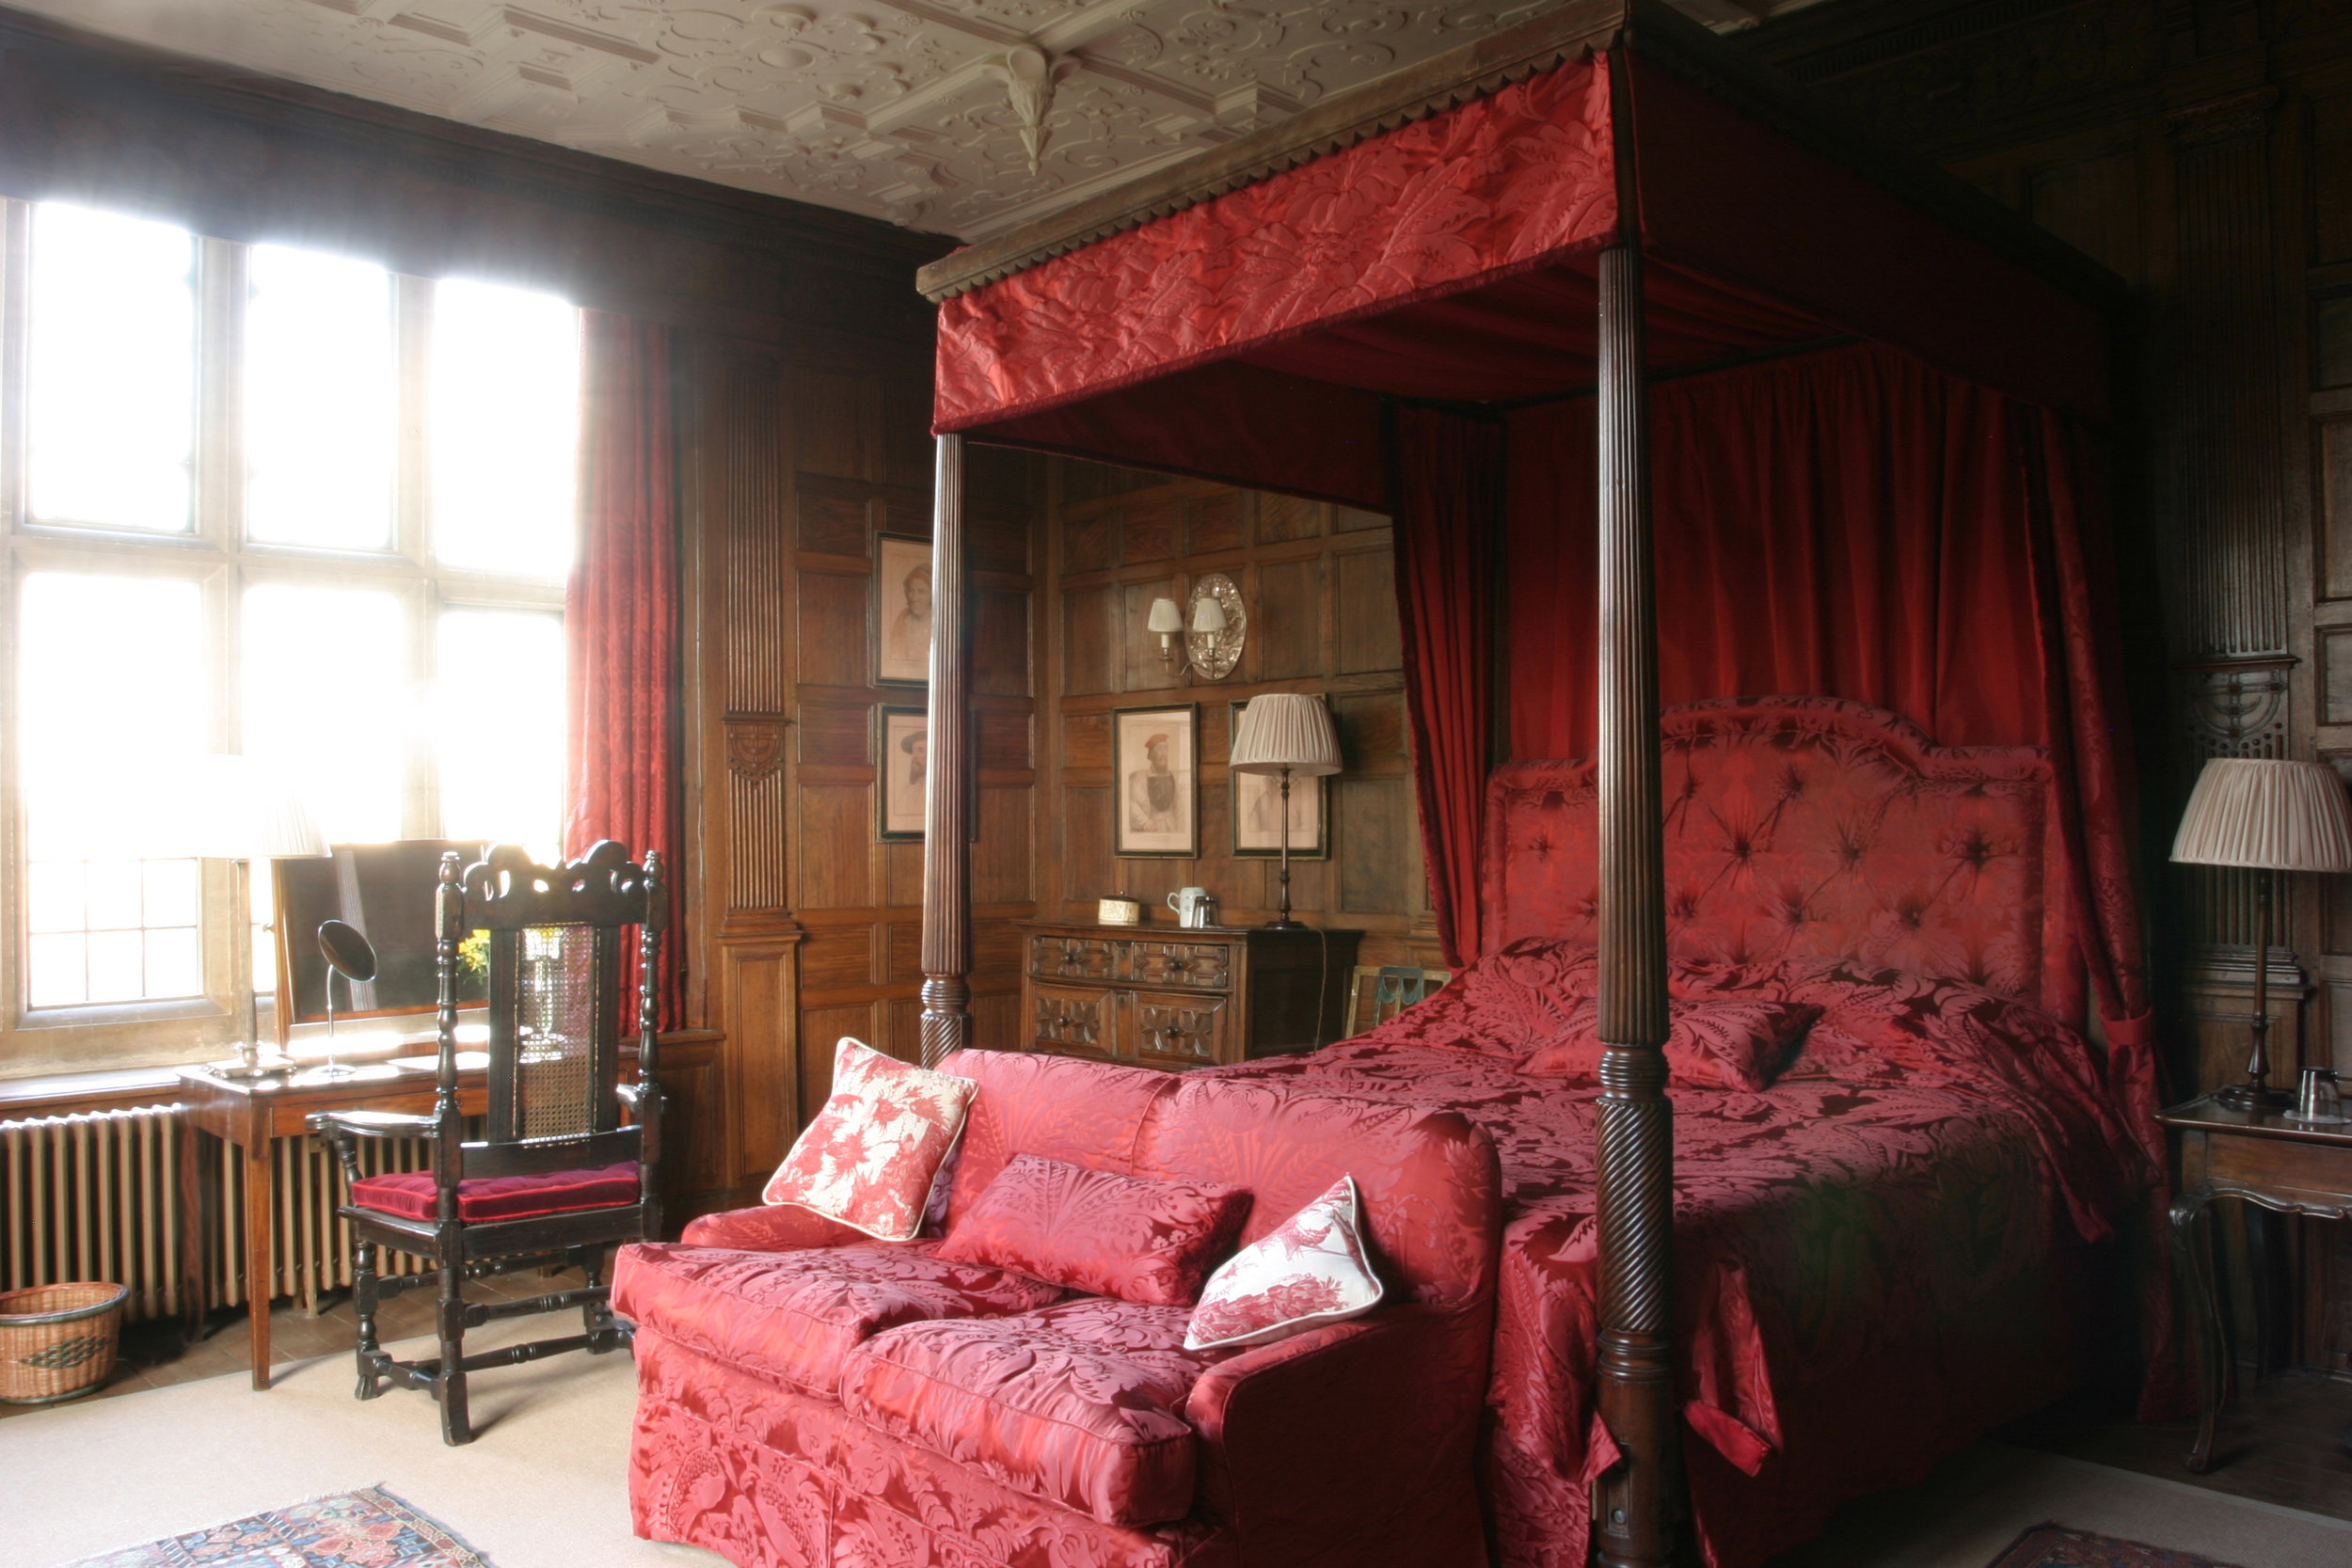 Carol_Fulton_Photography_for_Benchmark_House_Histories_The Colebrook Bedroom at Chilham Castle.jpg